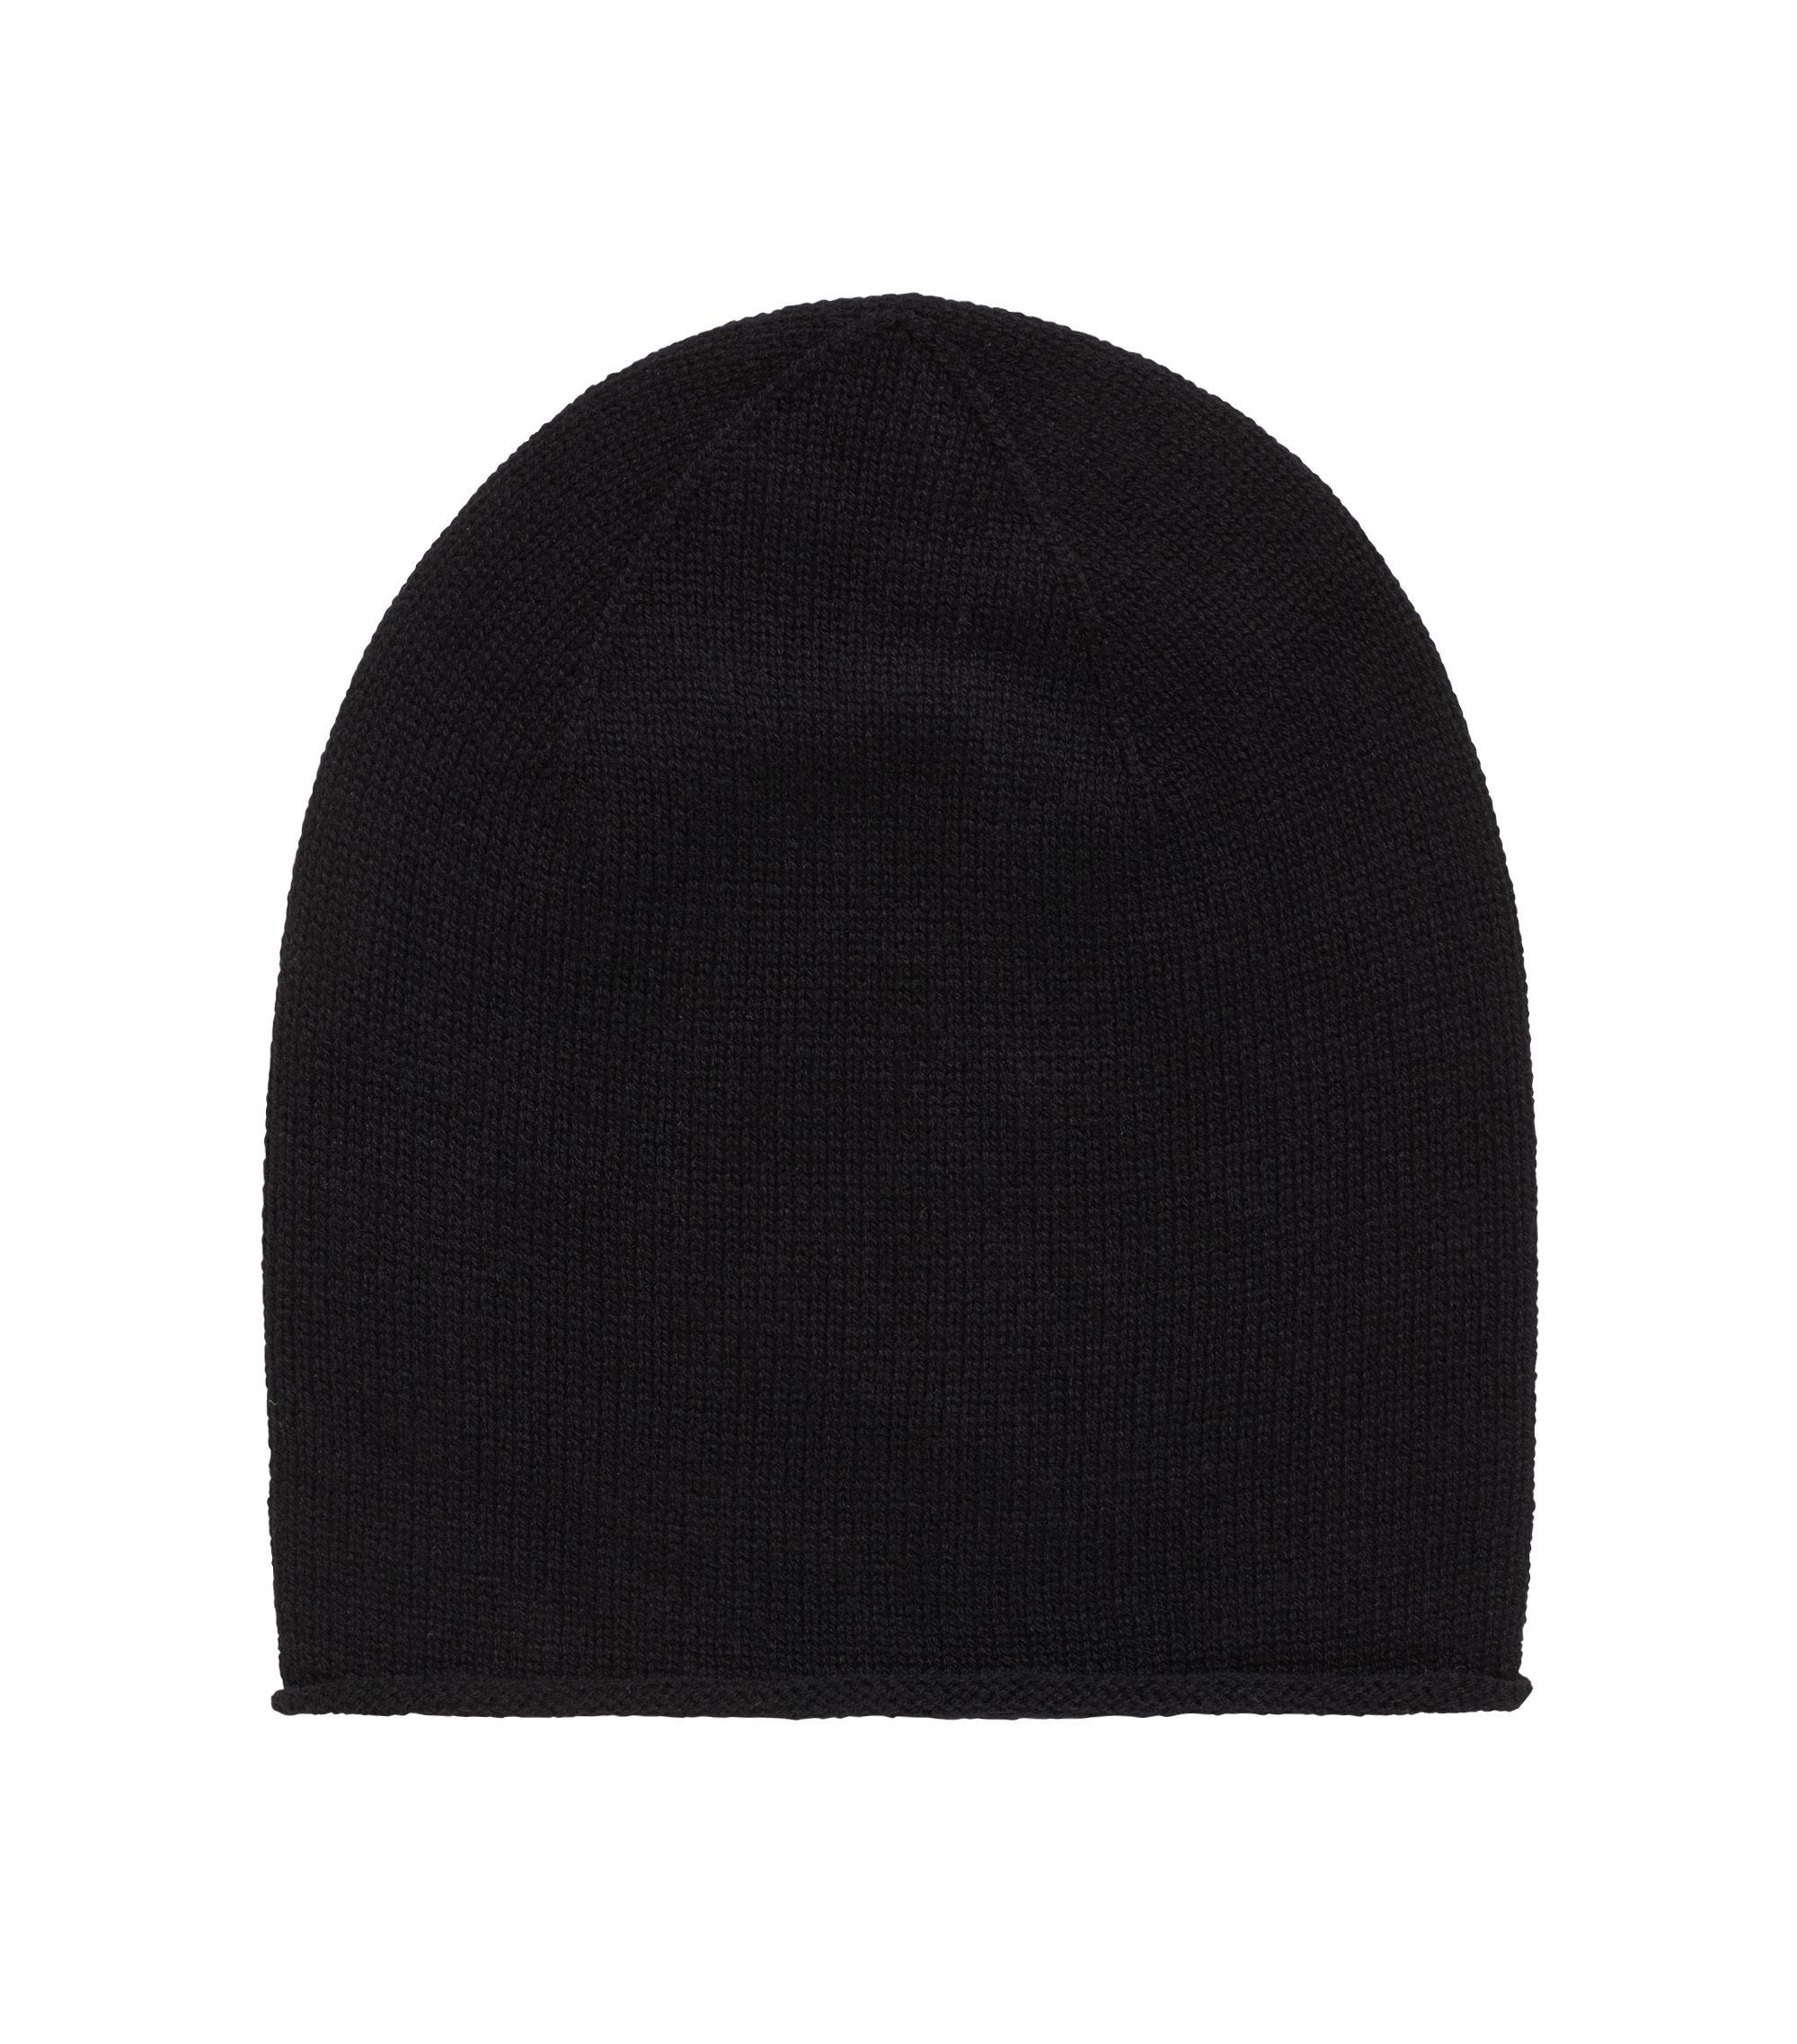 Beanie hat in mixed wools, Black